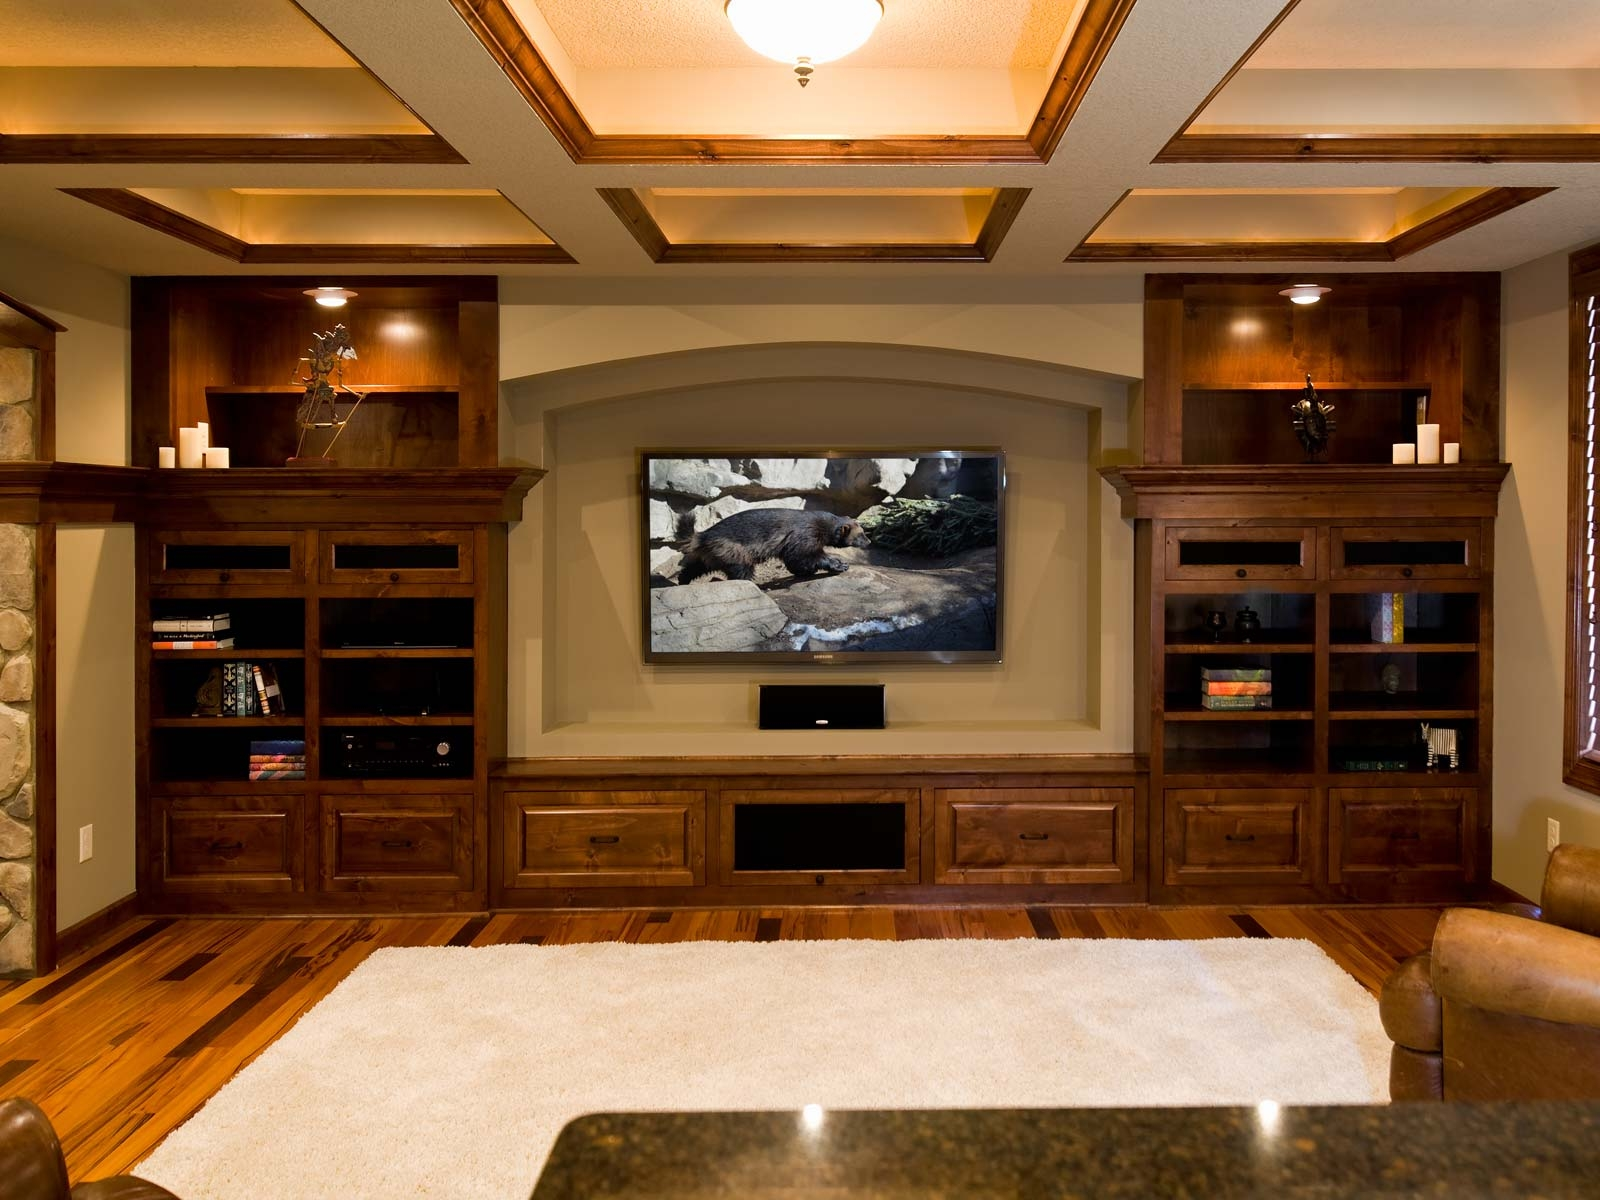 Finished Basement Ideas Pictures